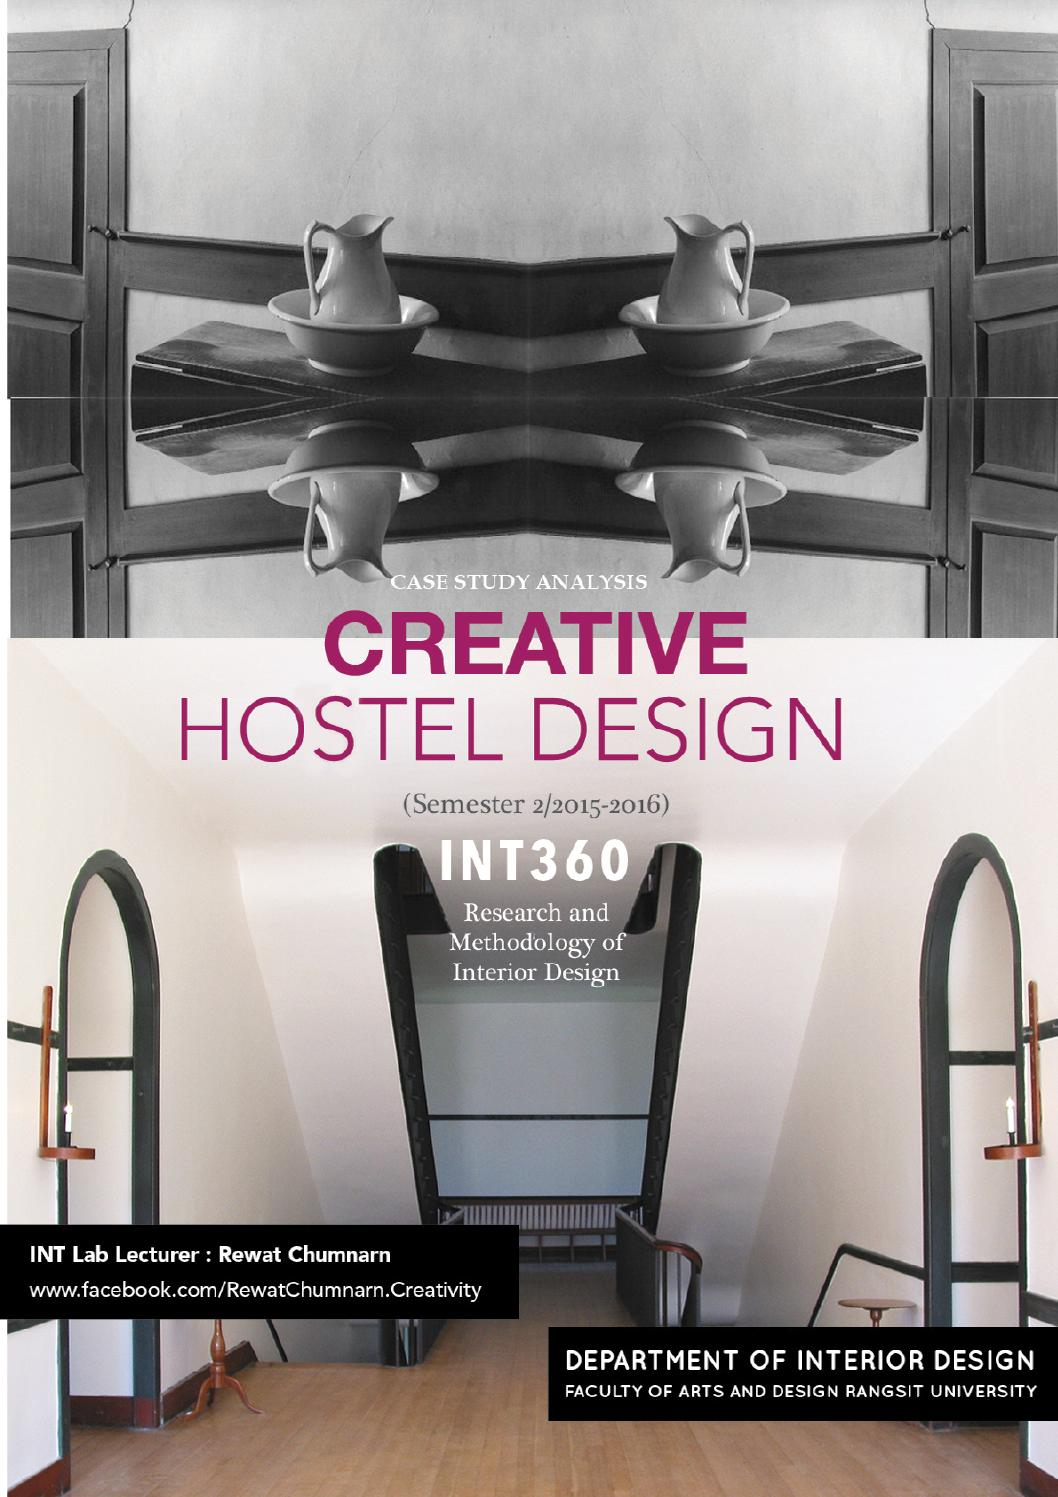 Case study analysis creative hostel design by rsu for Design a case